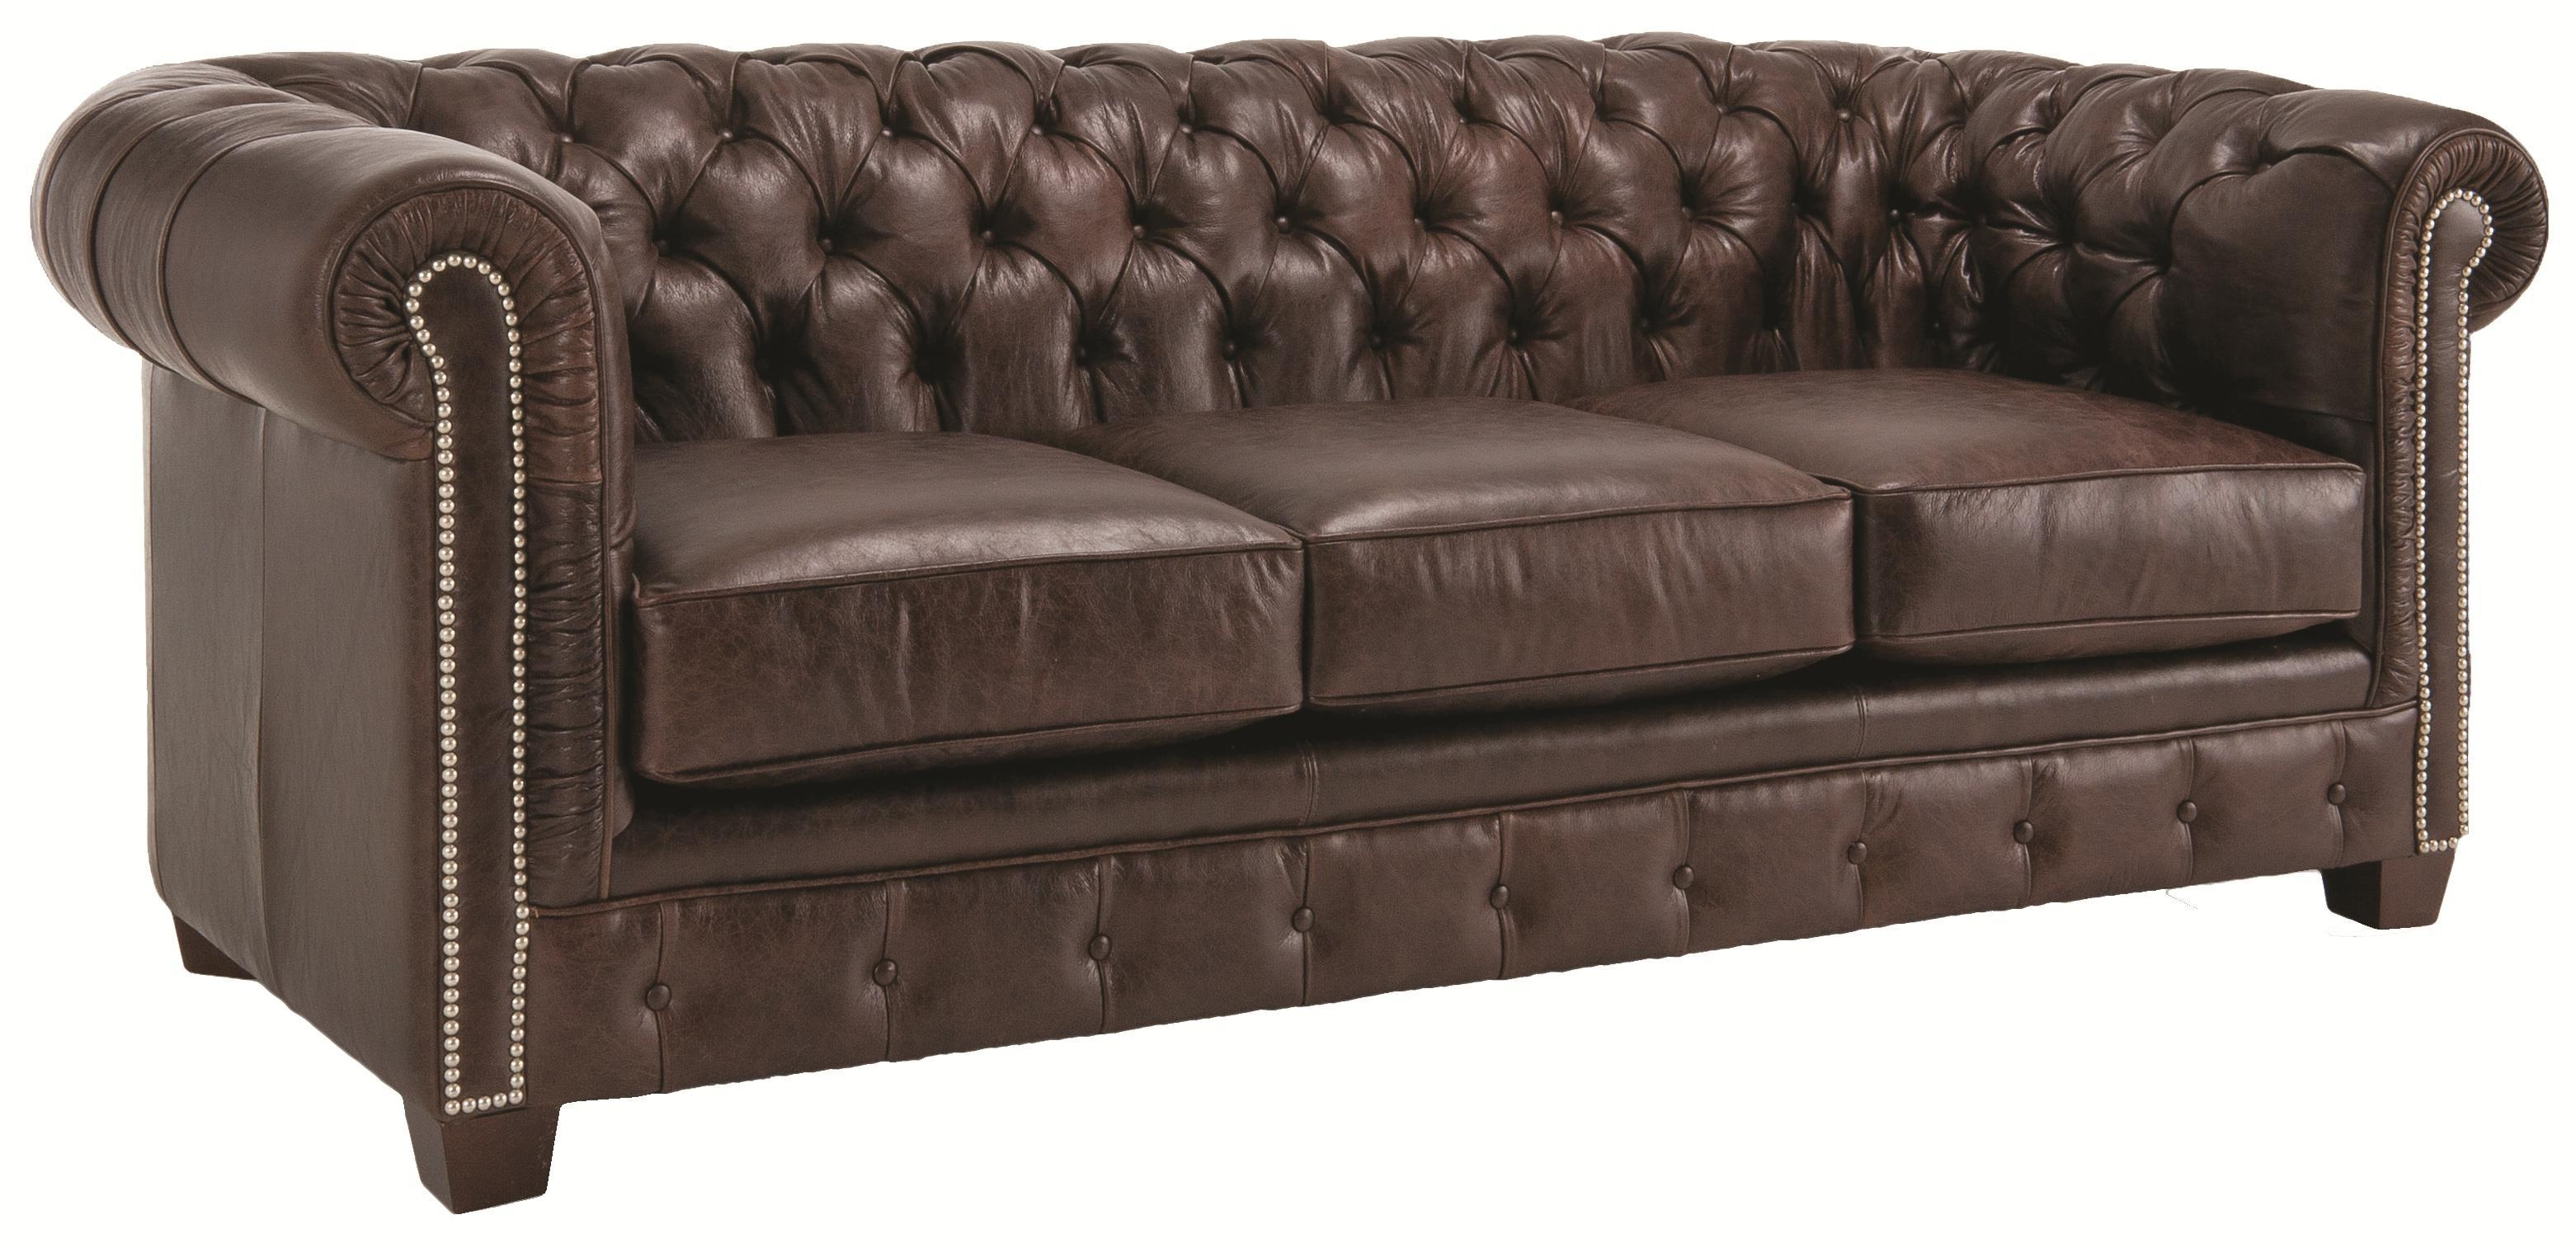 Churchill Tufted Leather Sofa | Living Expressions – Furniture Pertaining To Churchill Sofas (Image 13 of 20)